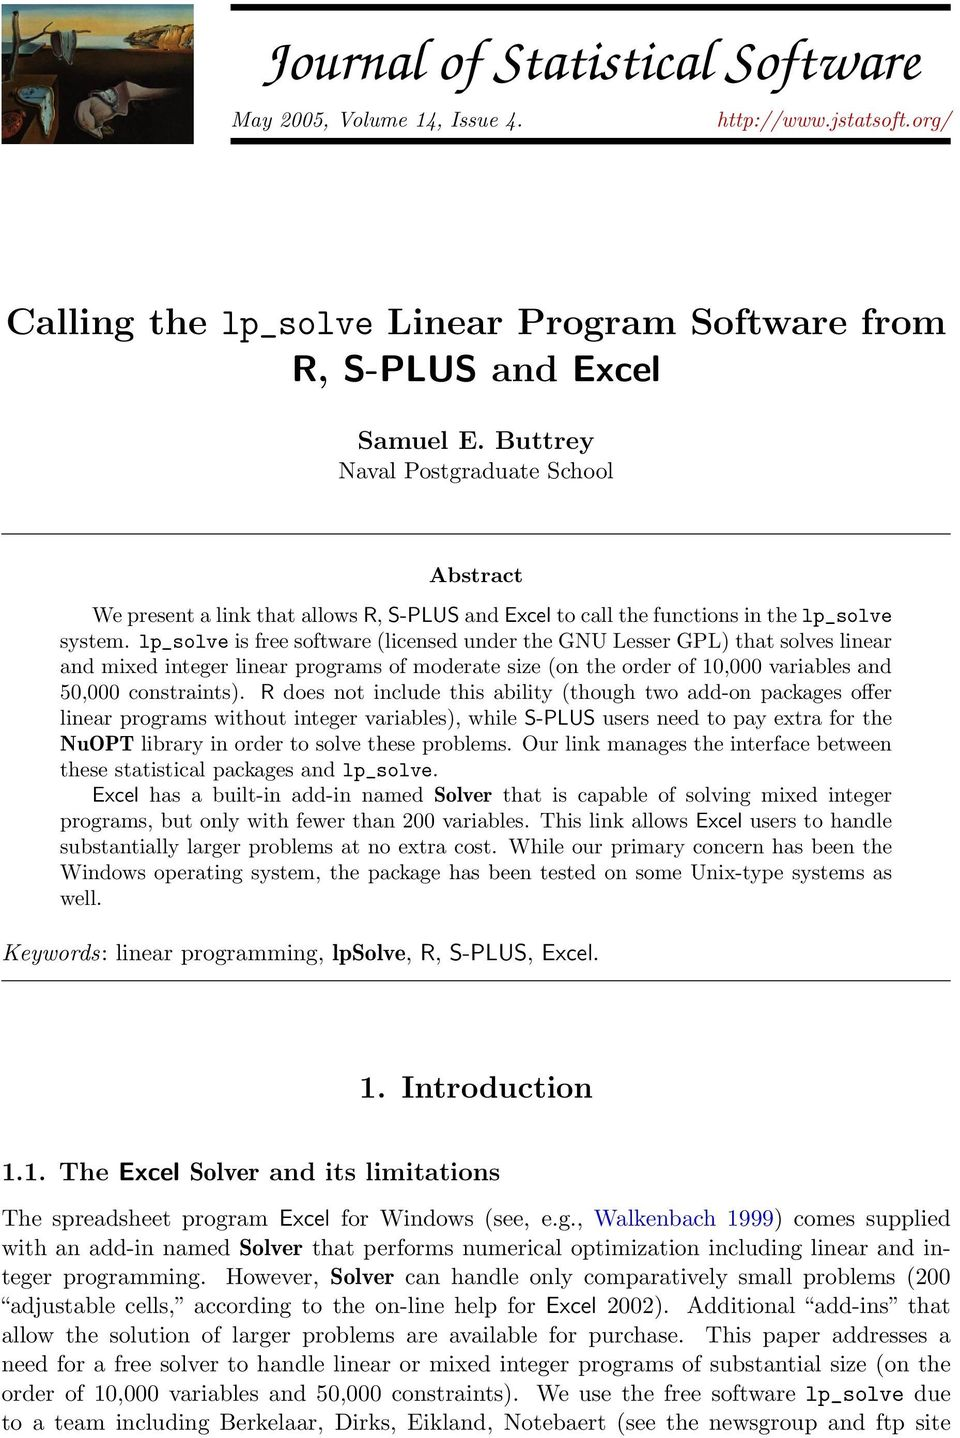 Journal of Statistical Software - PDF